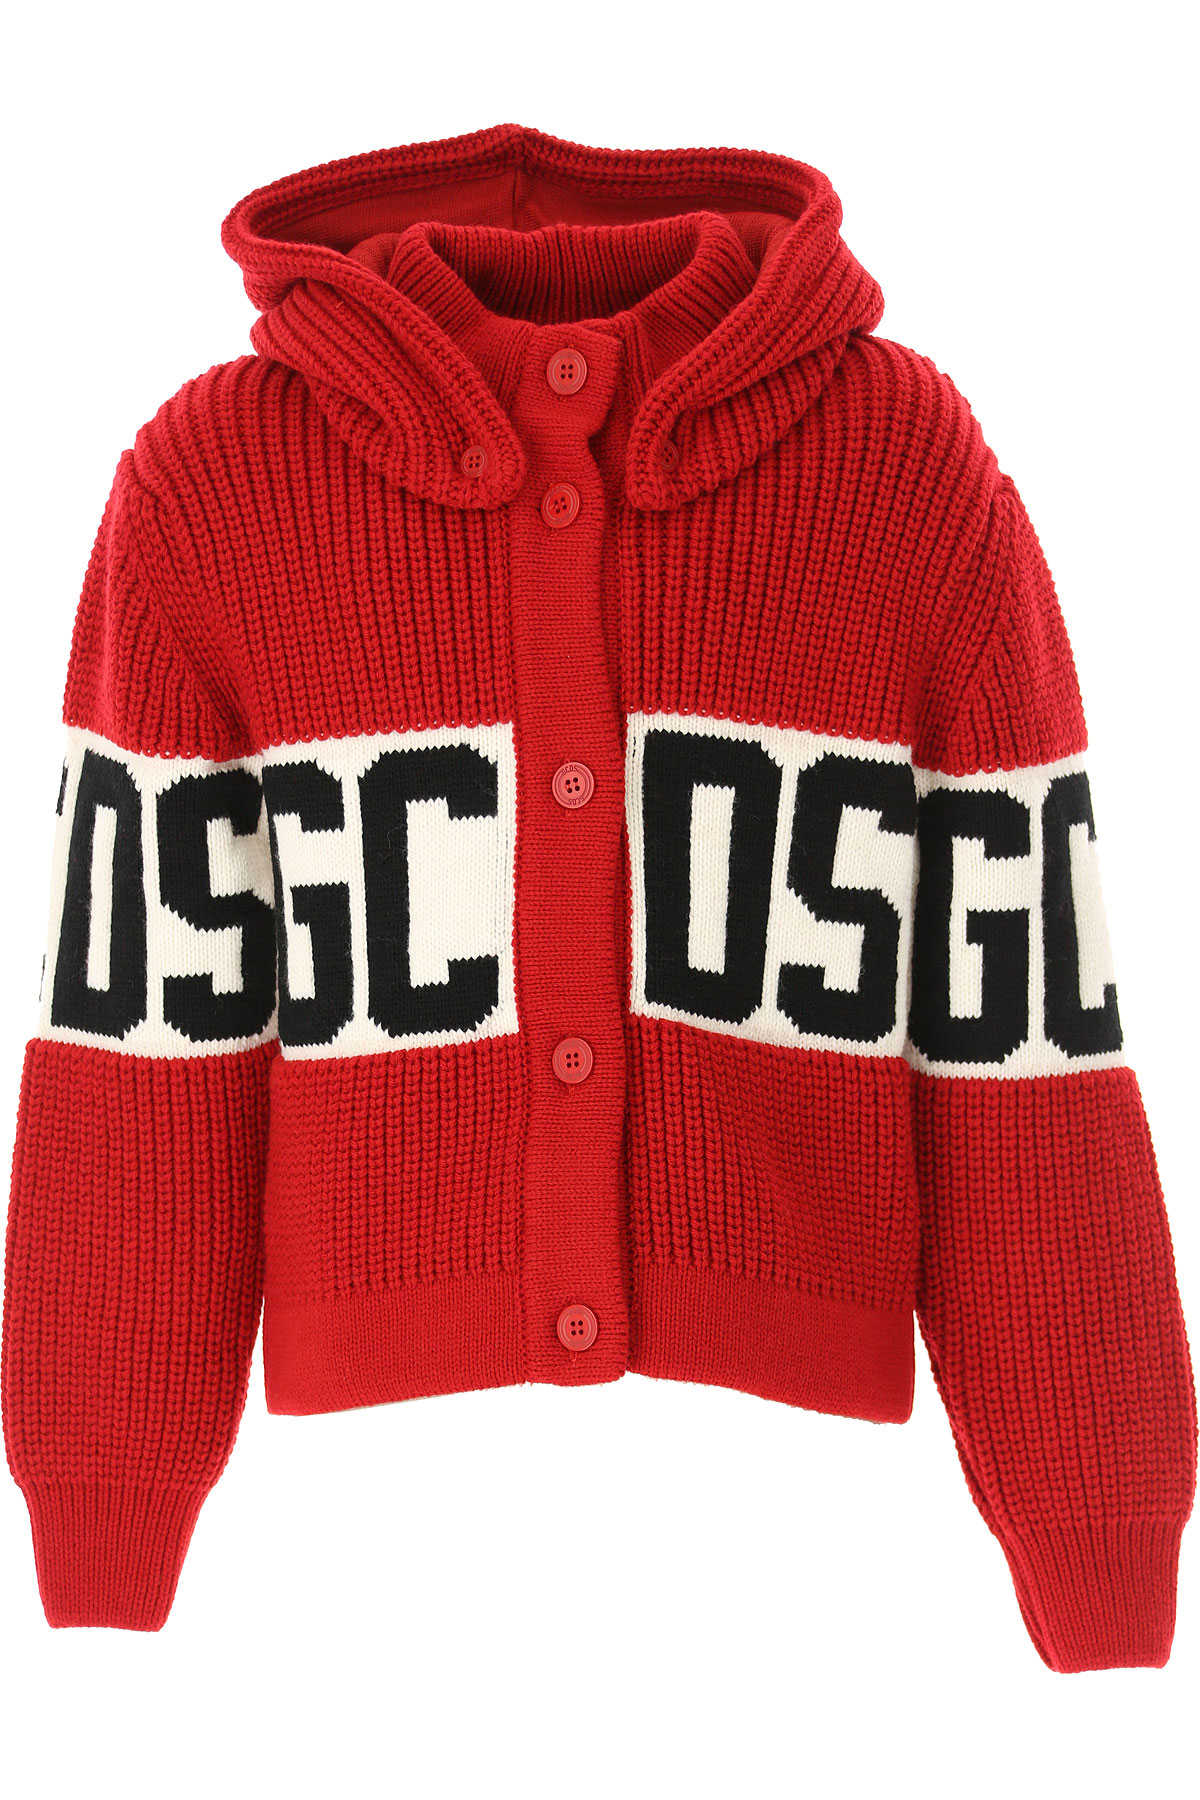 GCDS Kids Sweaters for Boys Red SE - GOOFASH